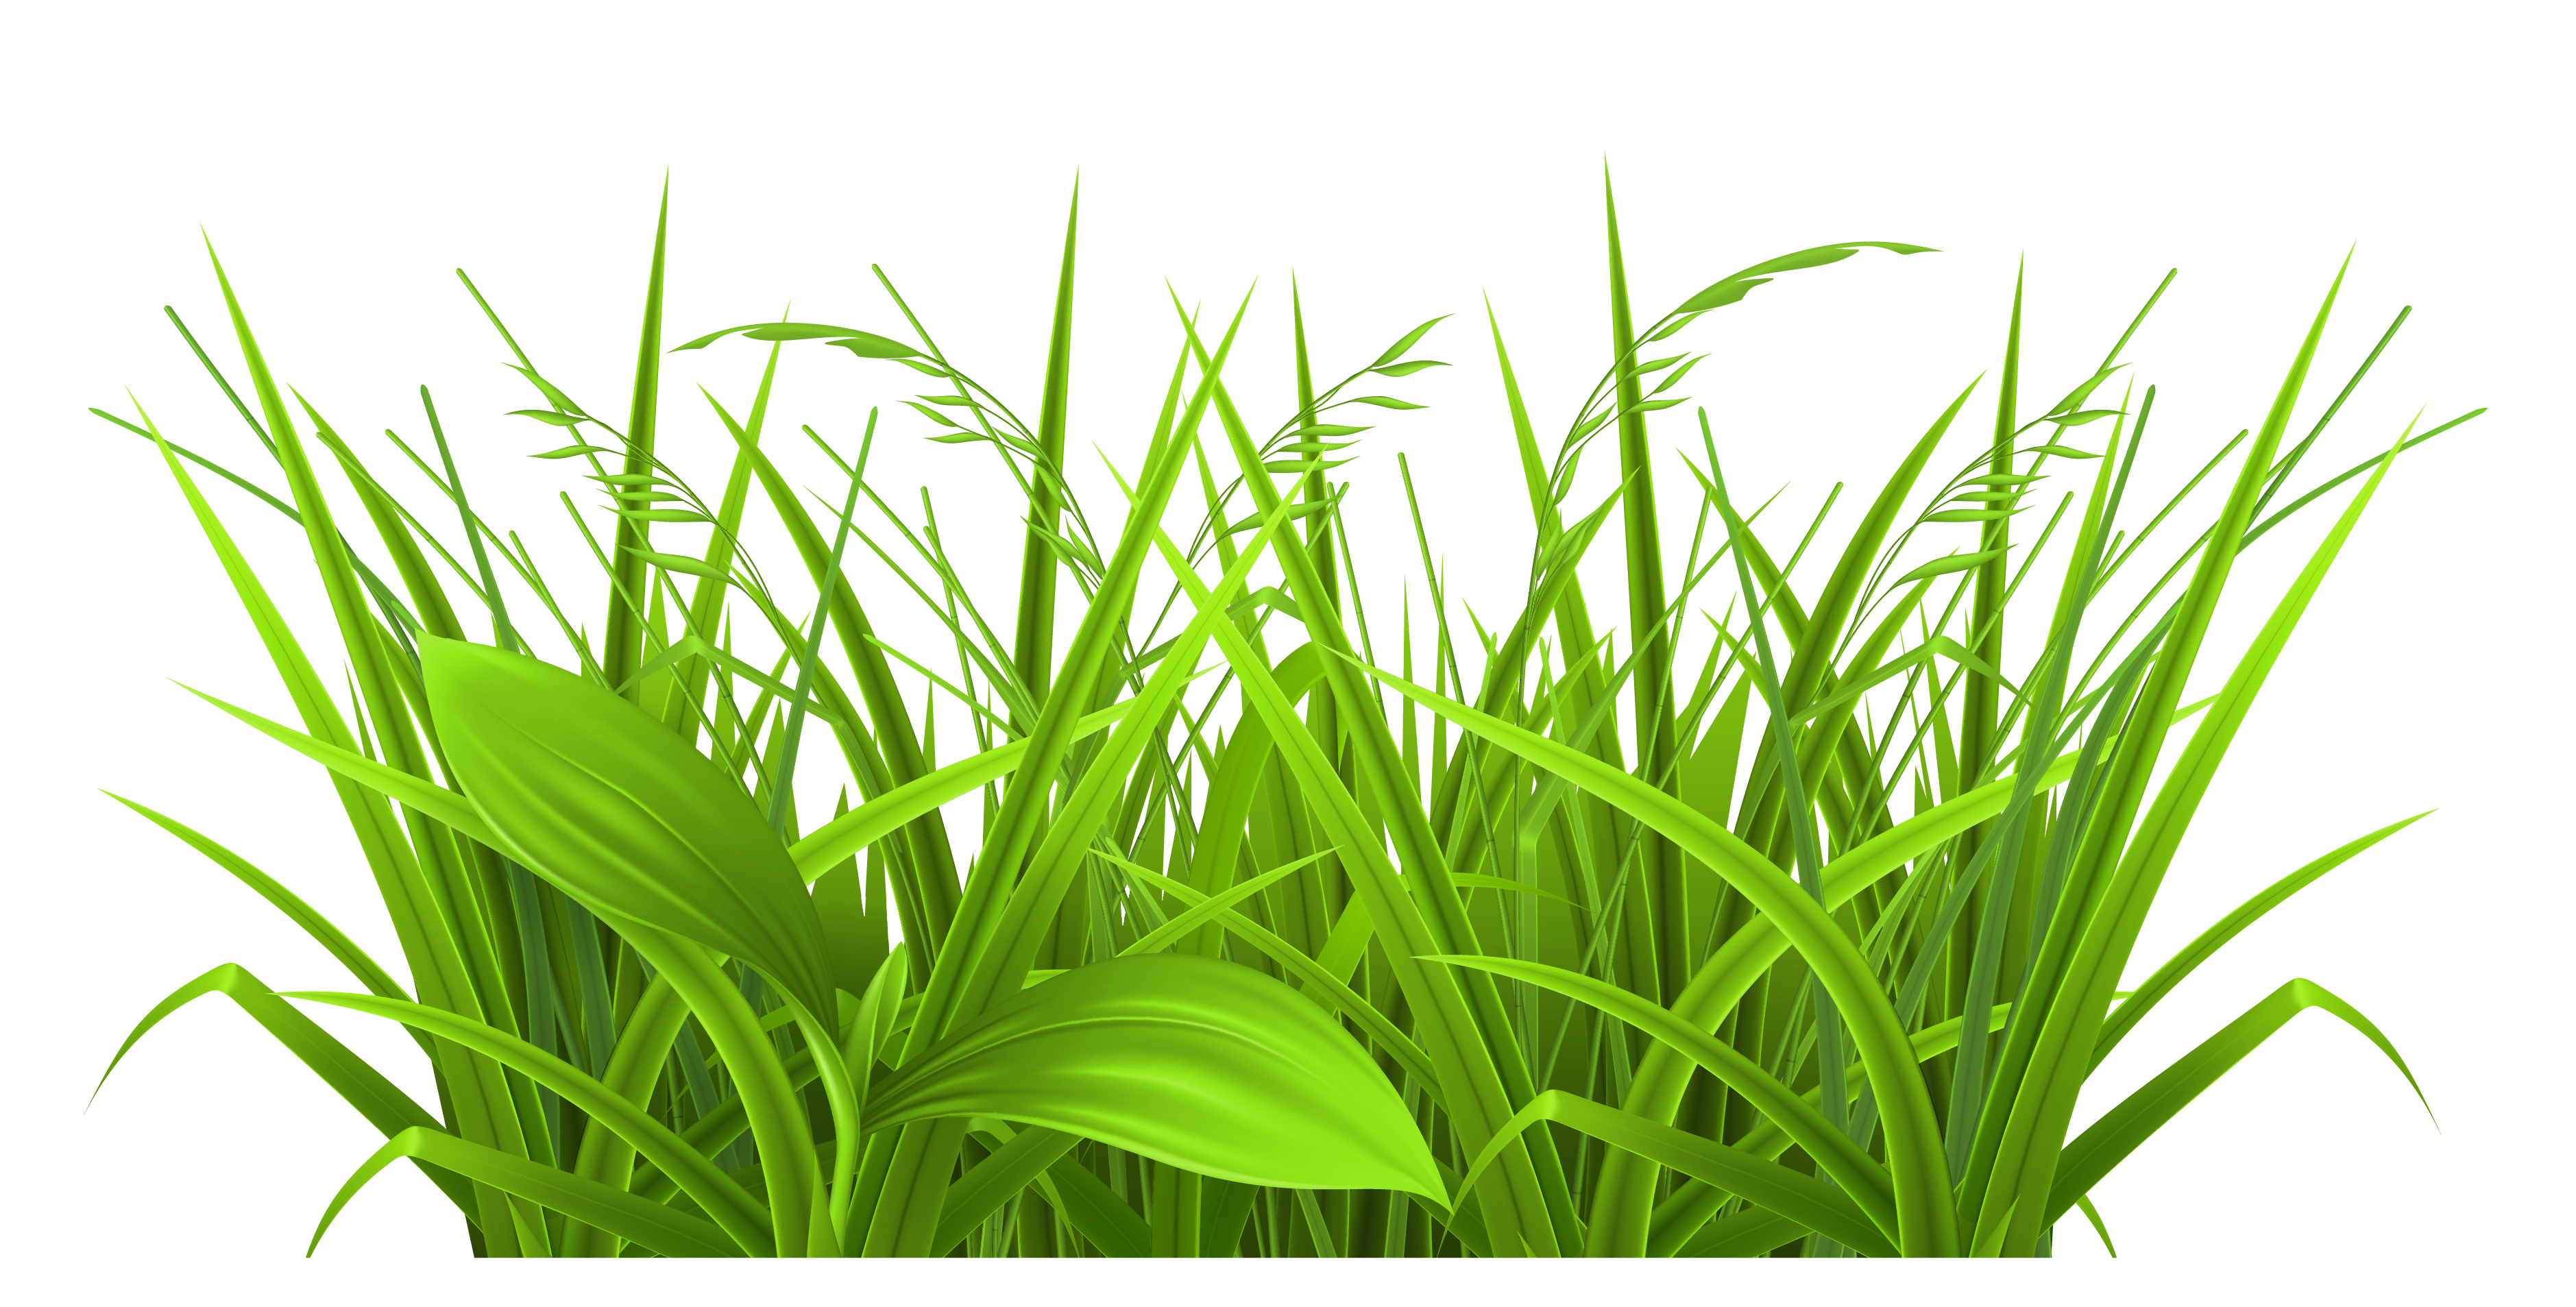 3758x1907 Grass Black And White Grass Clip Art Images